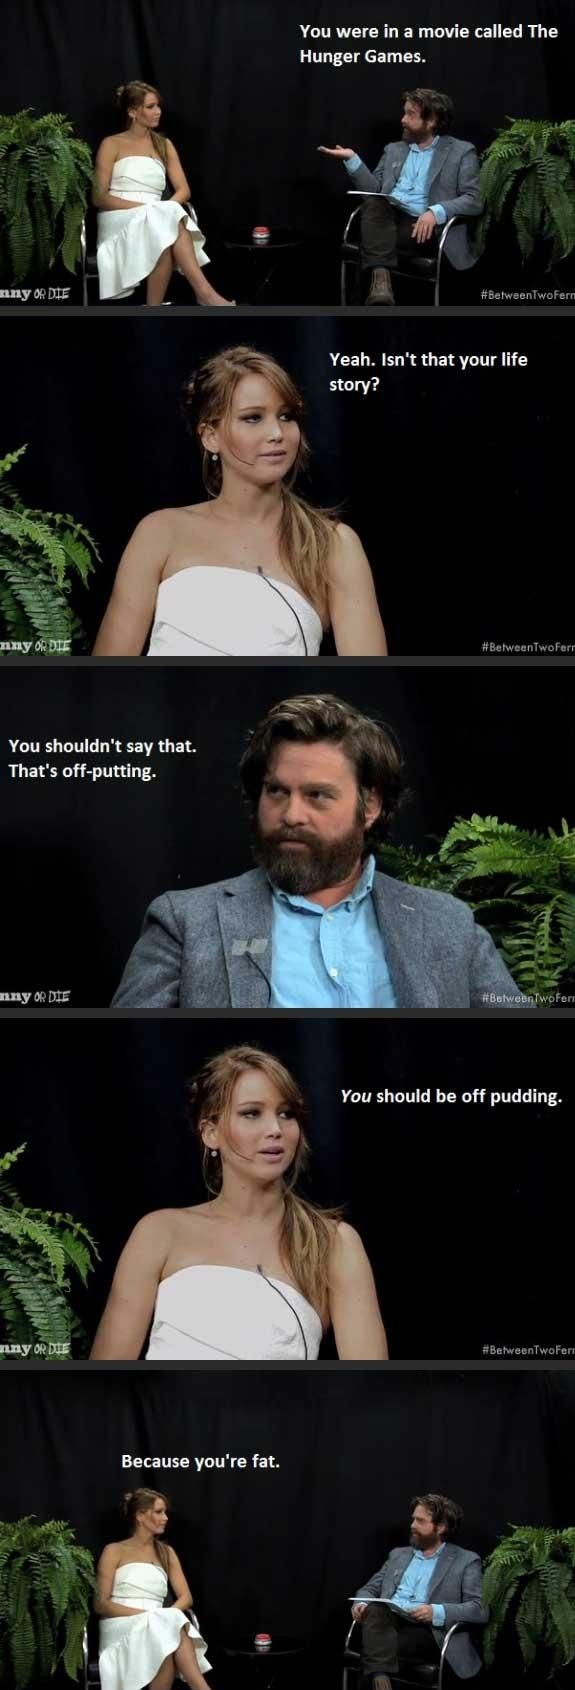 Zach gets OWNED. She's hysterical. Always. LOL